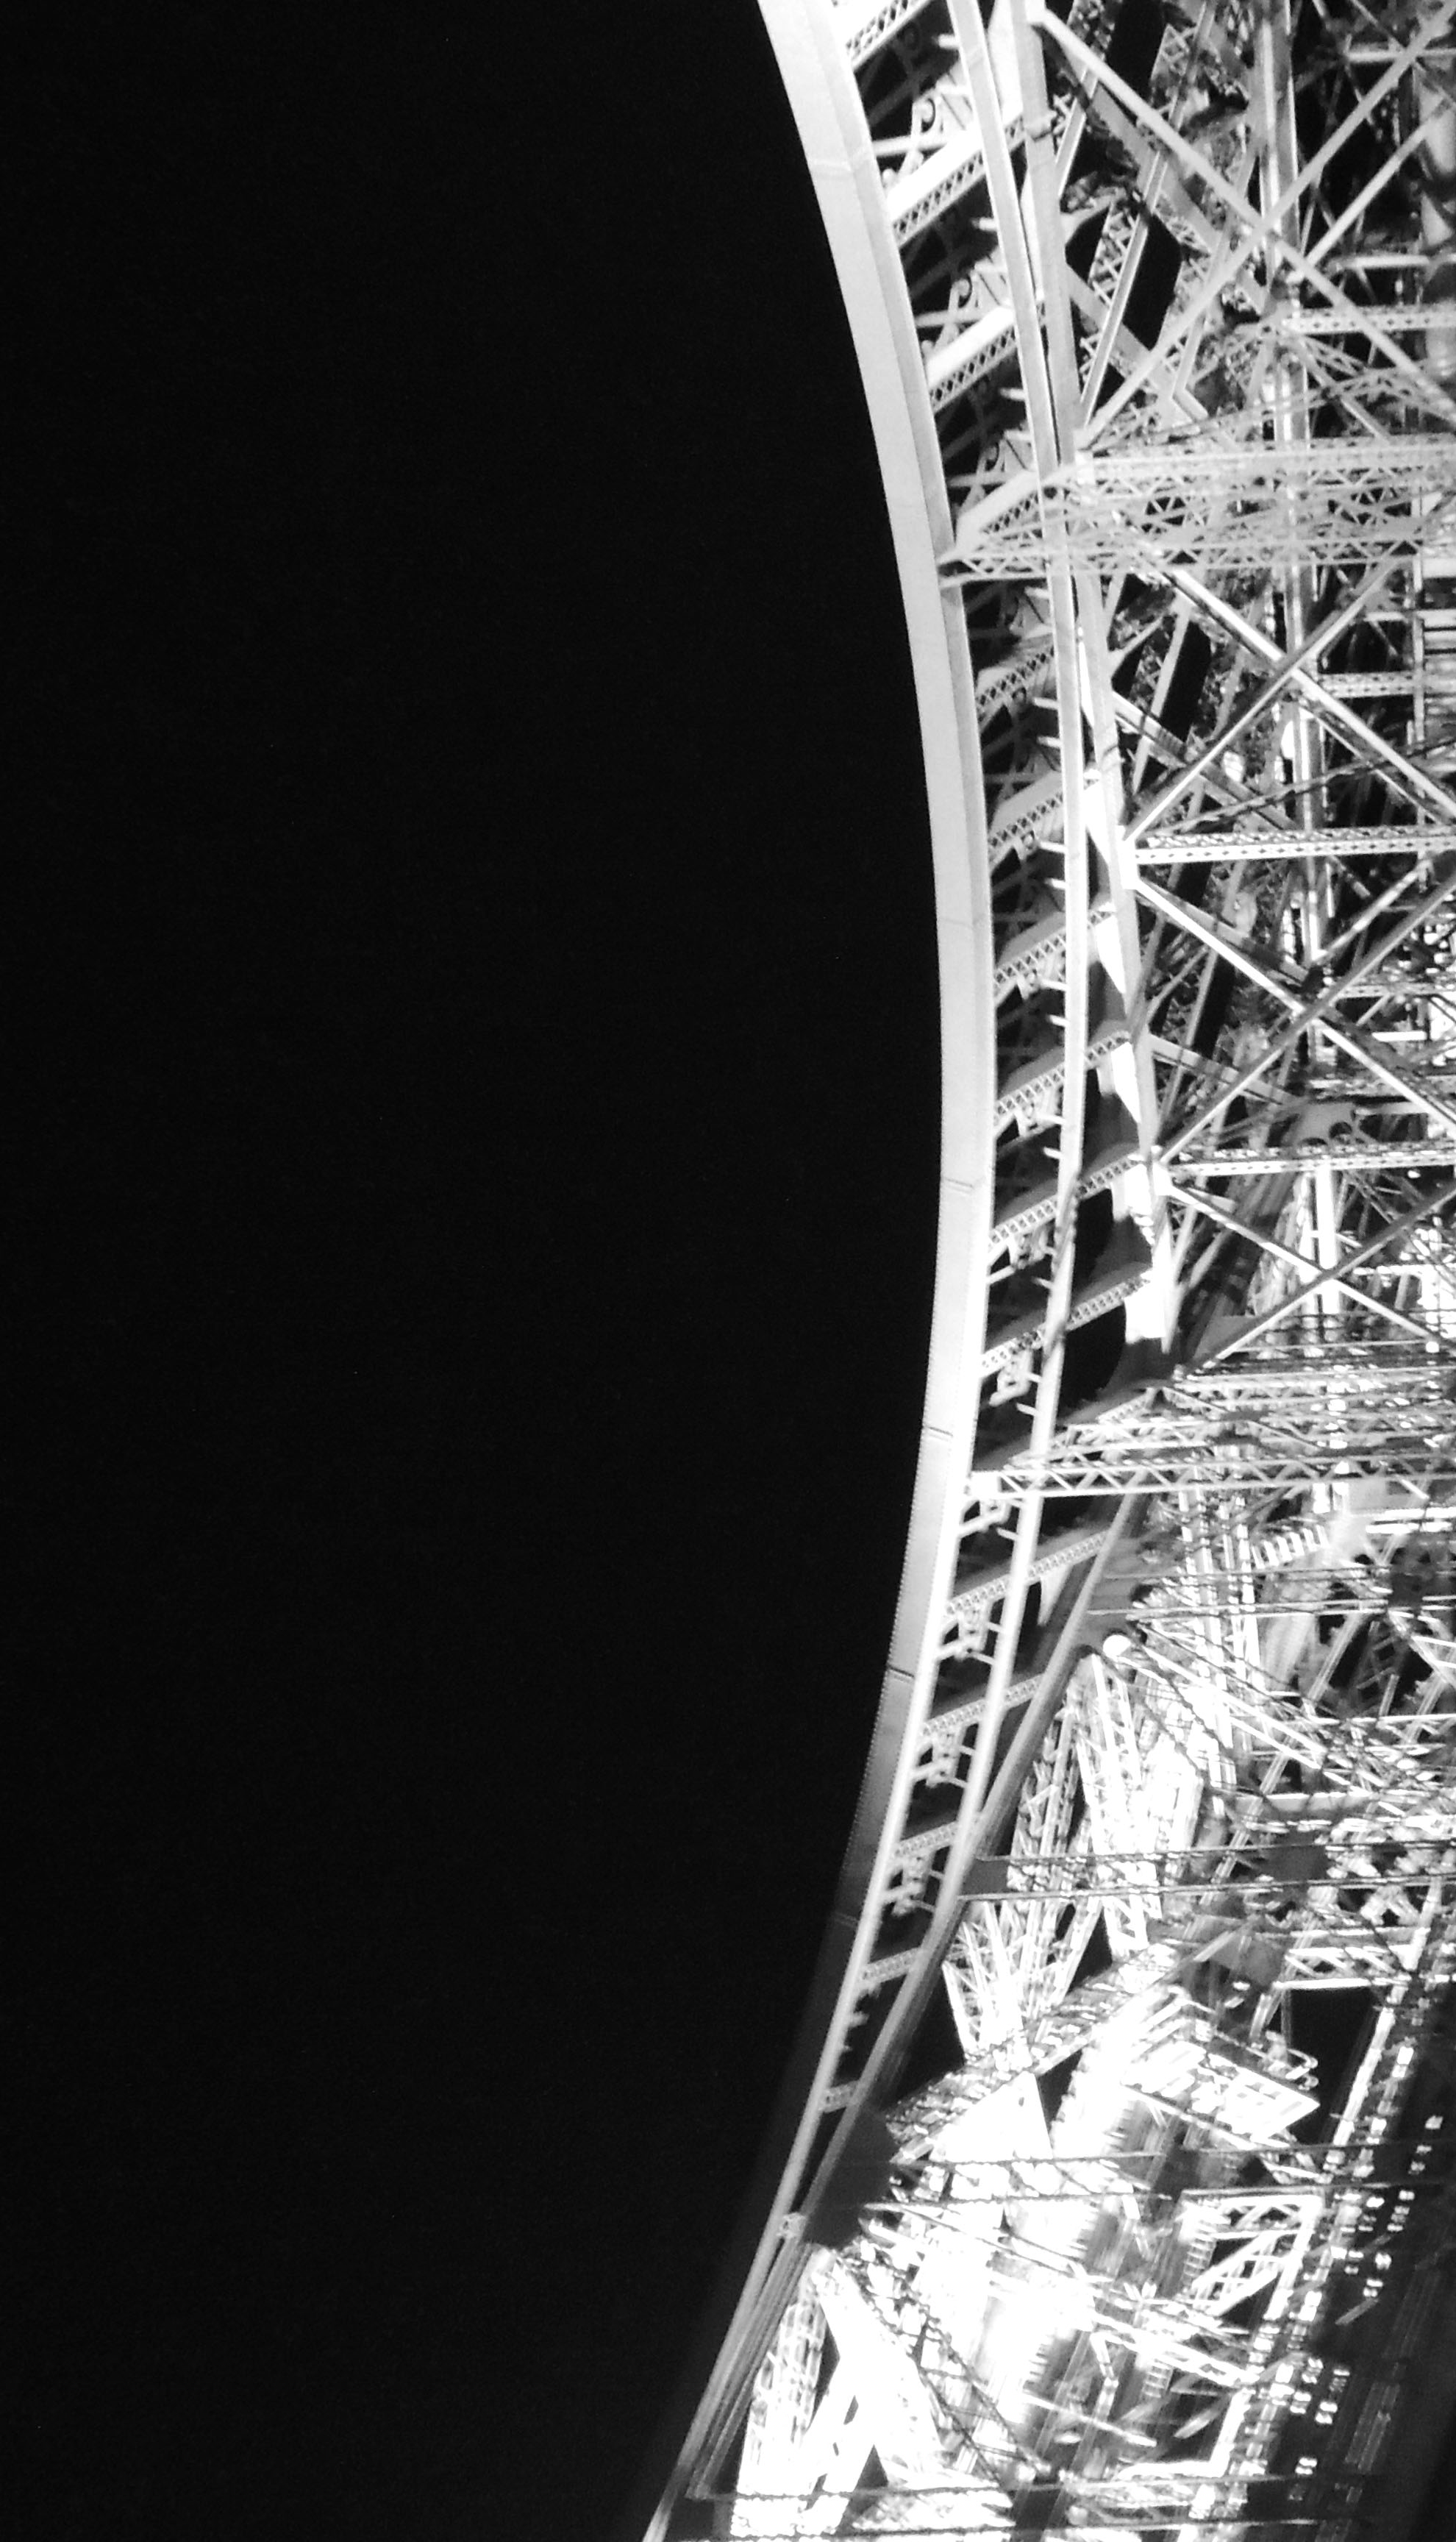 black_and_white_abstract_eiffel_tower_photography.jpg